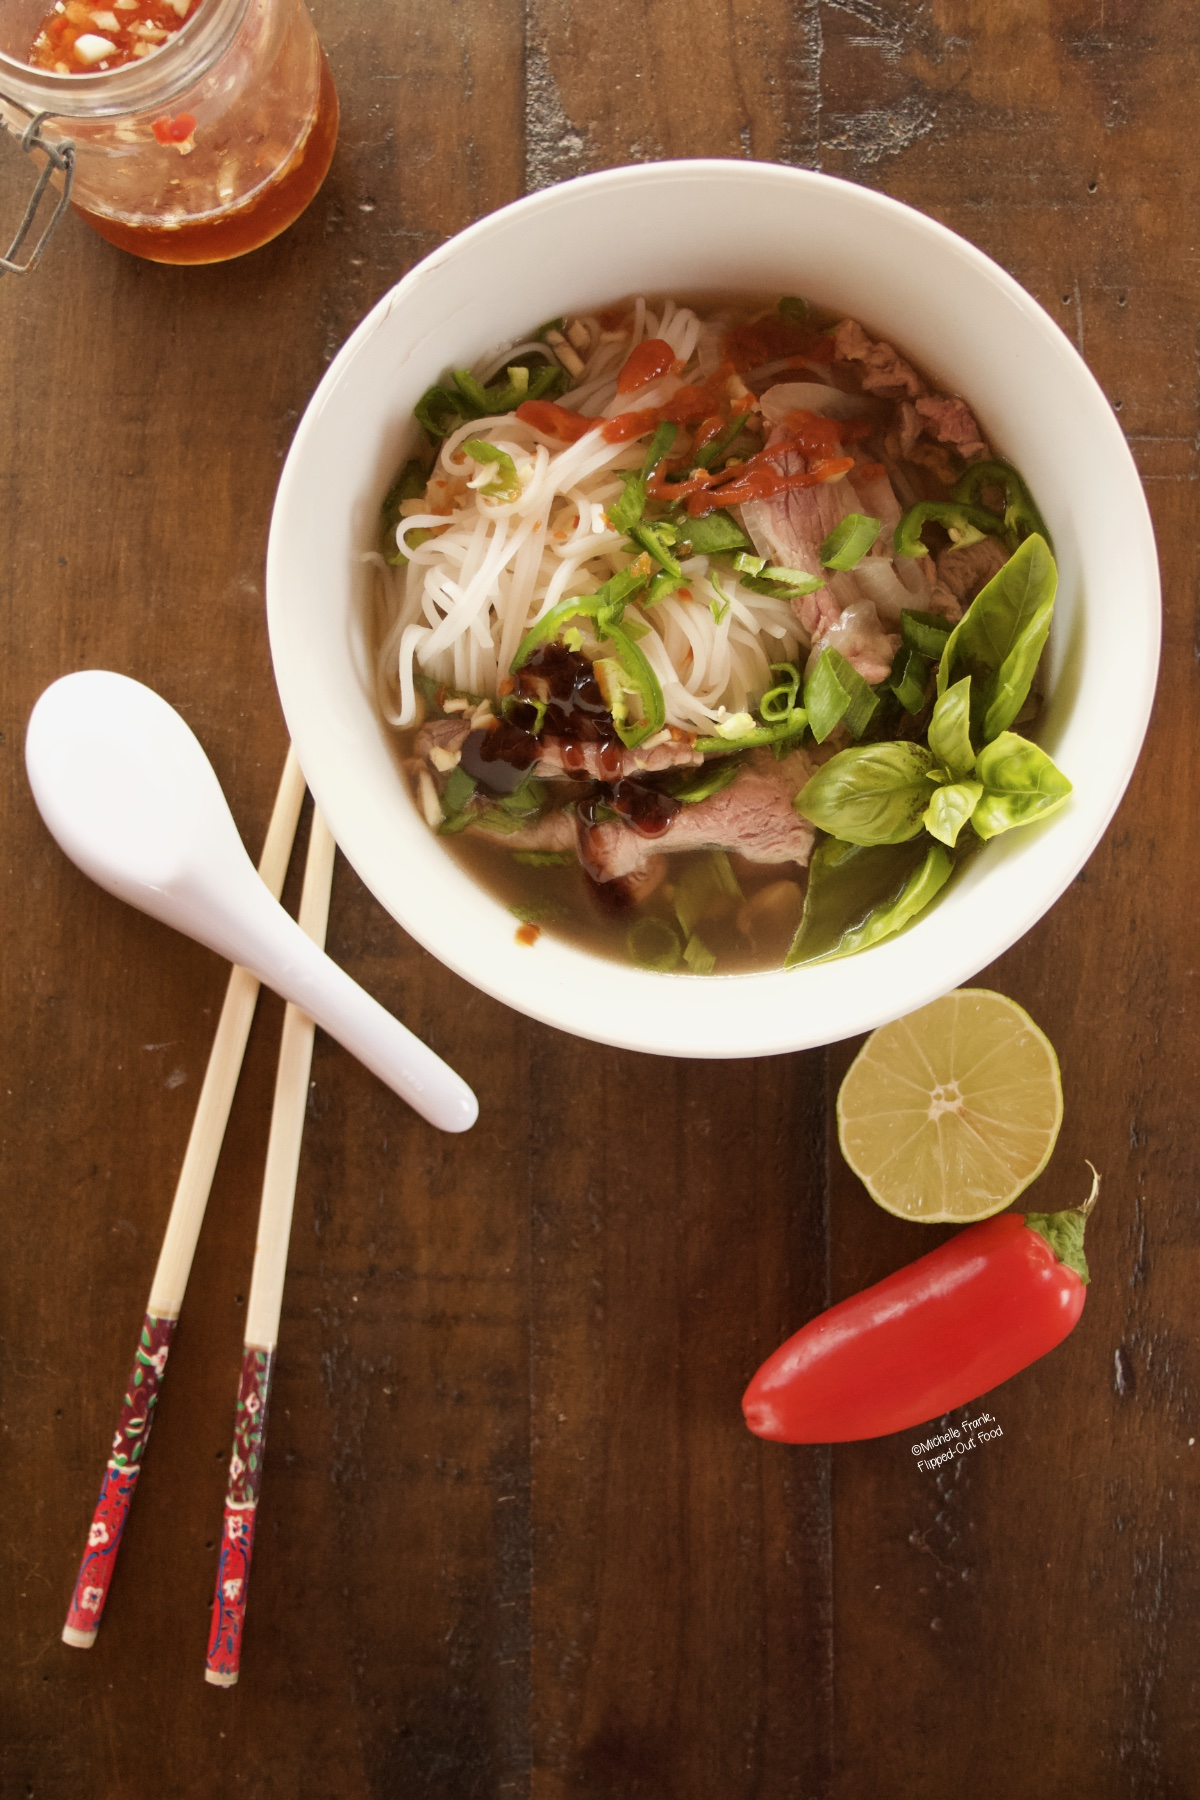 A bowl of Real Deal Beef Pho Noodle Soup sitting next to a jar of nuoc cham, chopsticks, spoon, half a lime, and a red chili.